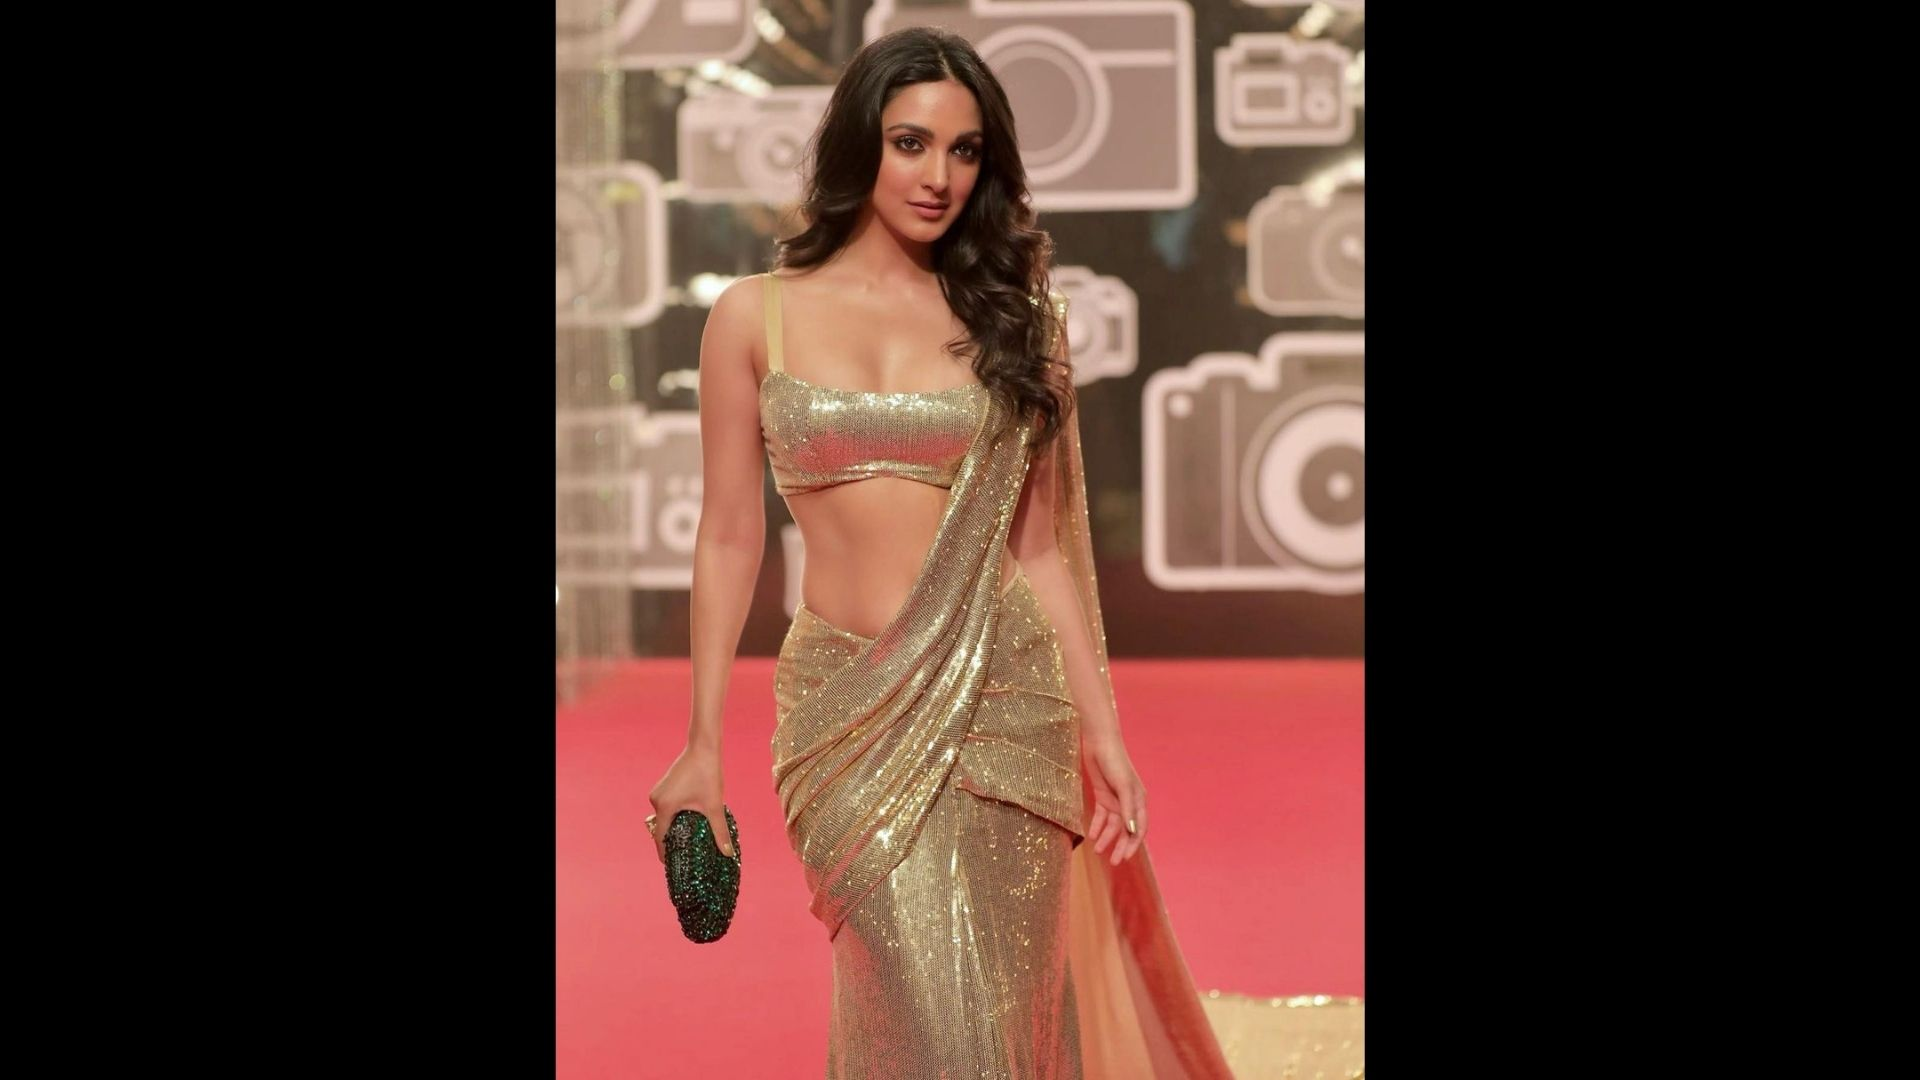 Kiara Advani's Most Stylish Pictures Prove That She Is An Absolute Diva